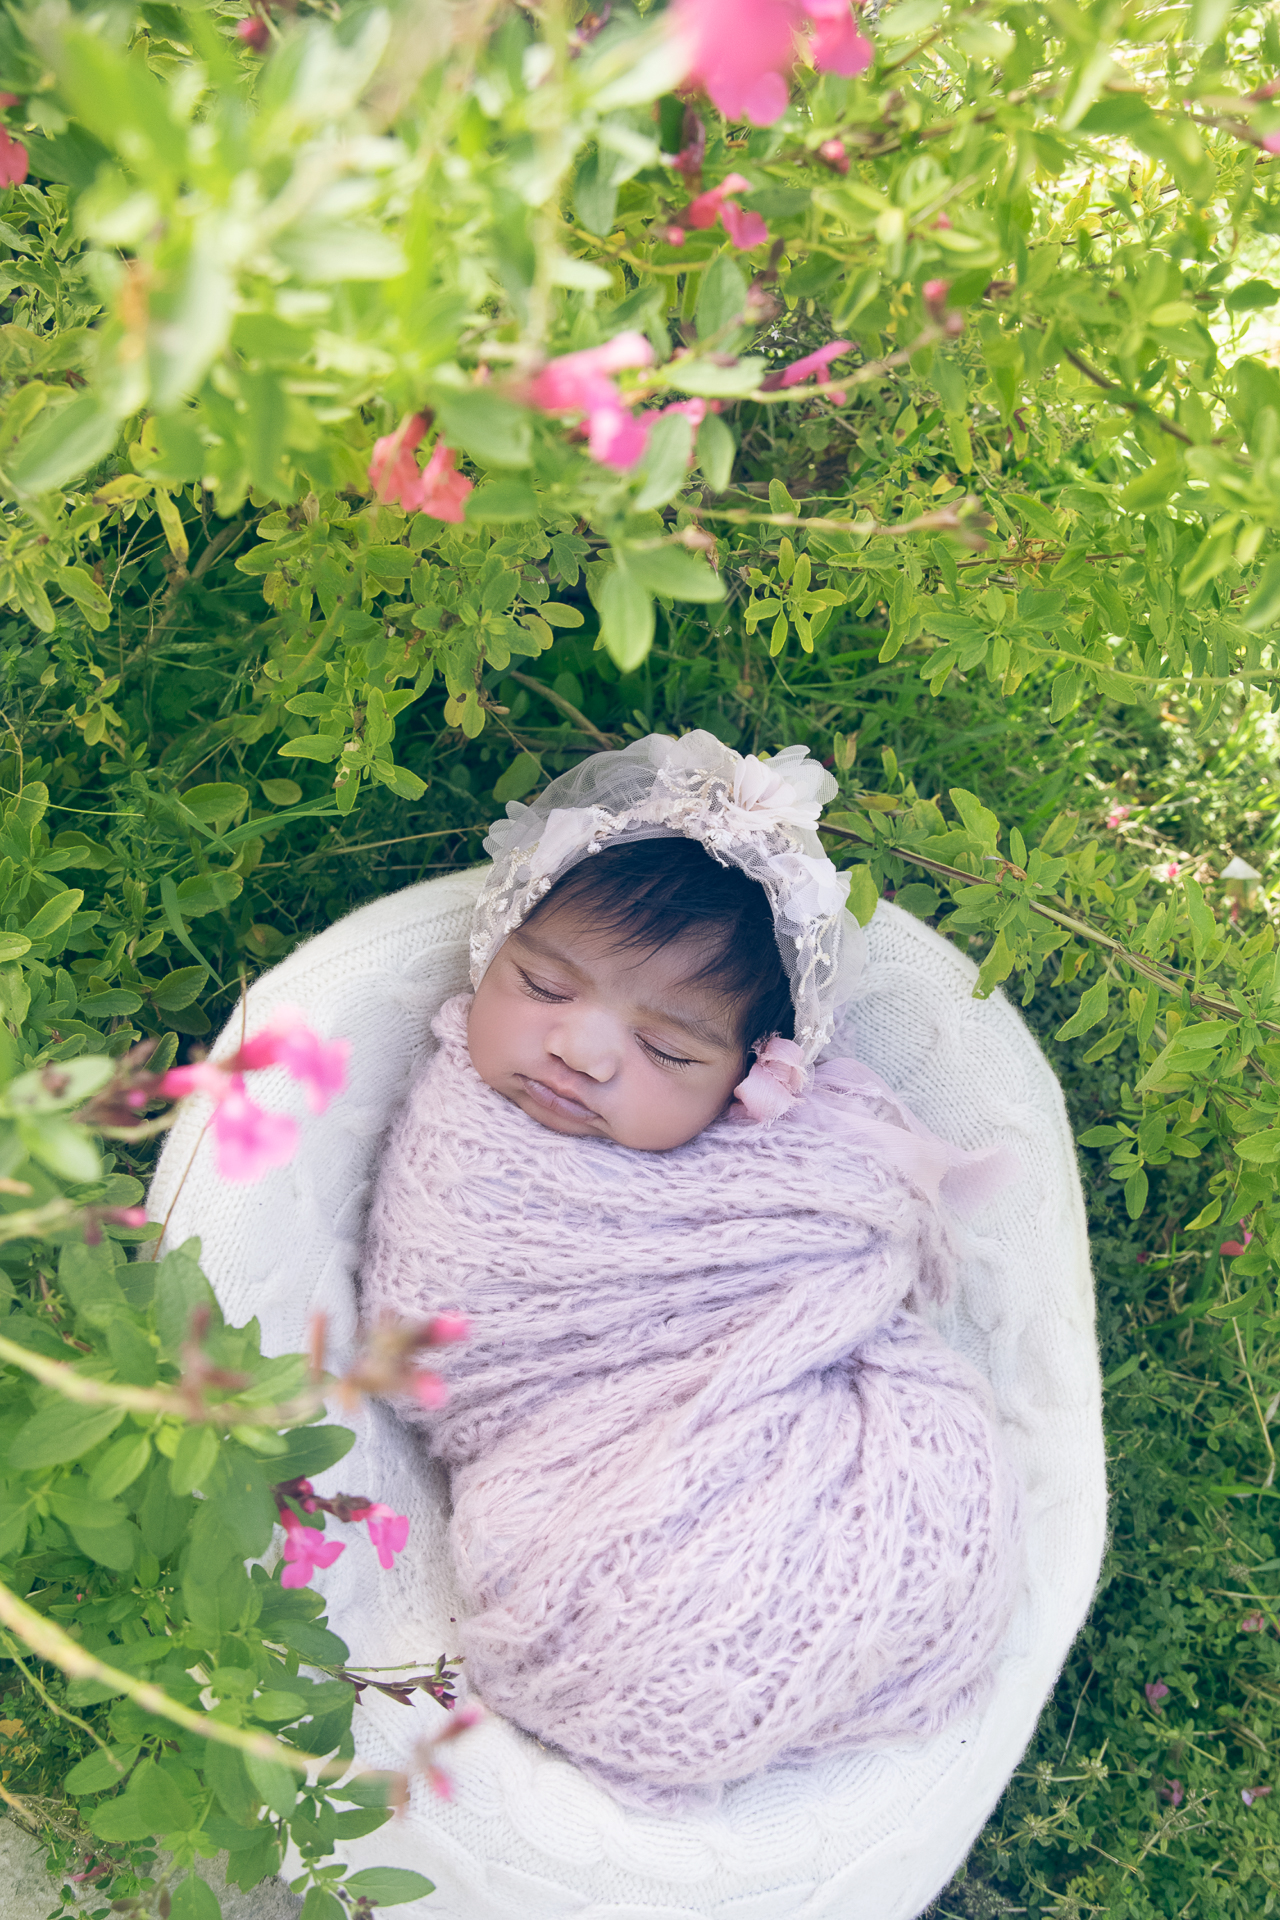 Newborn rests on light beige round prop while wearing pink wrap and pink hat outdoors.